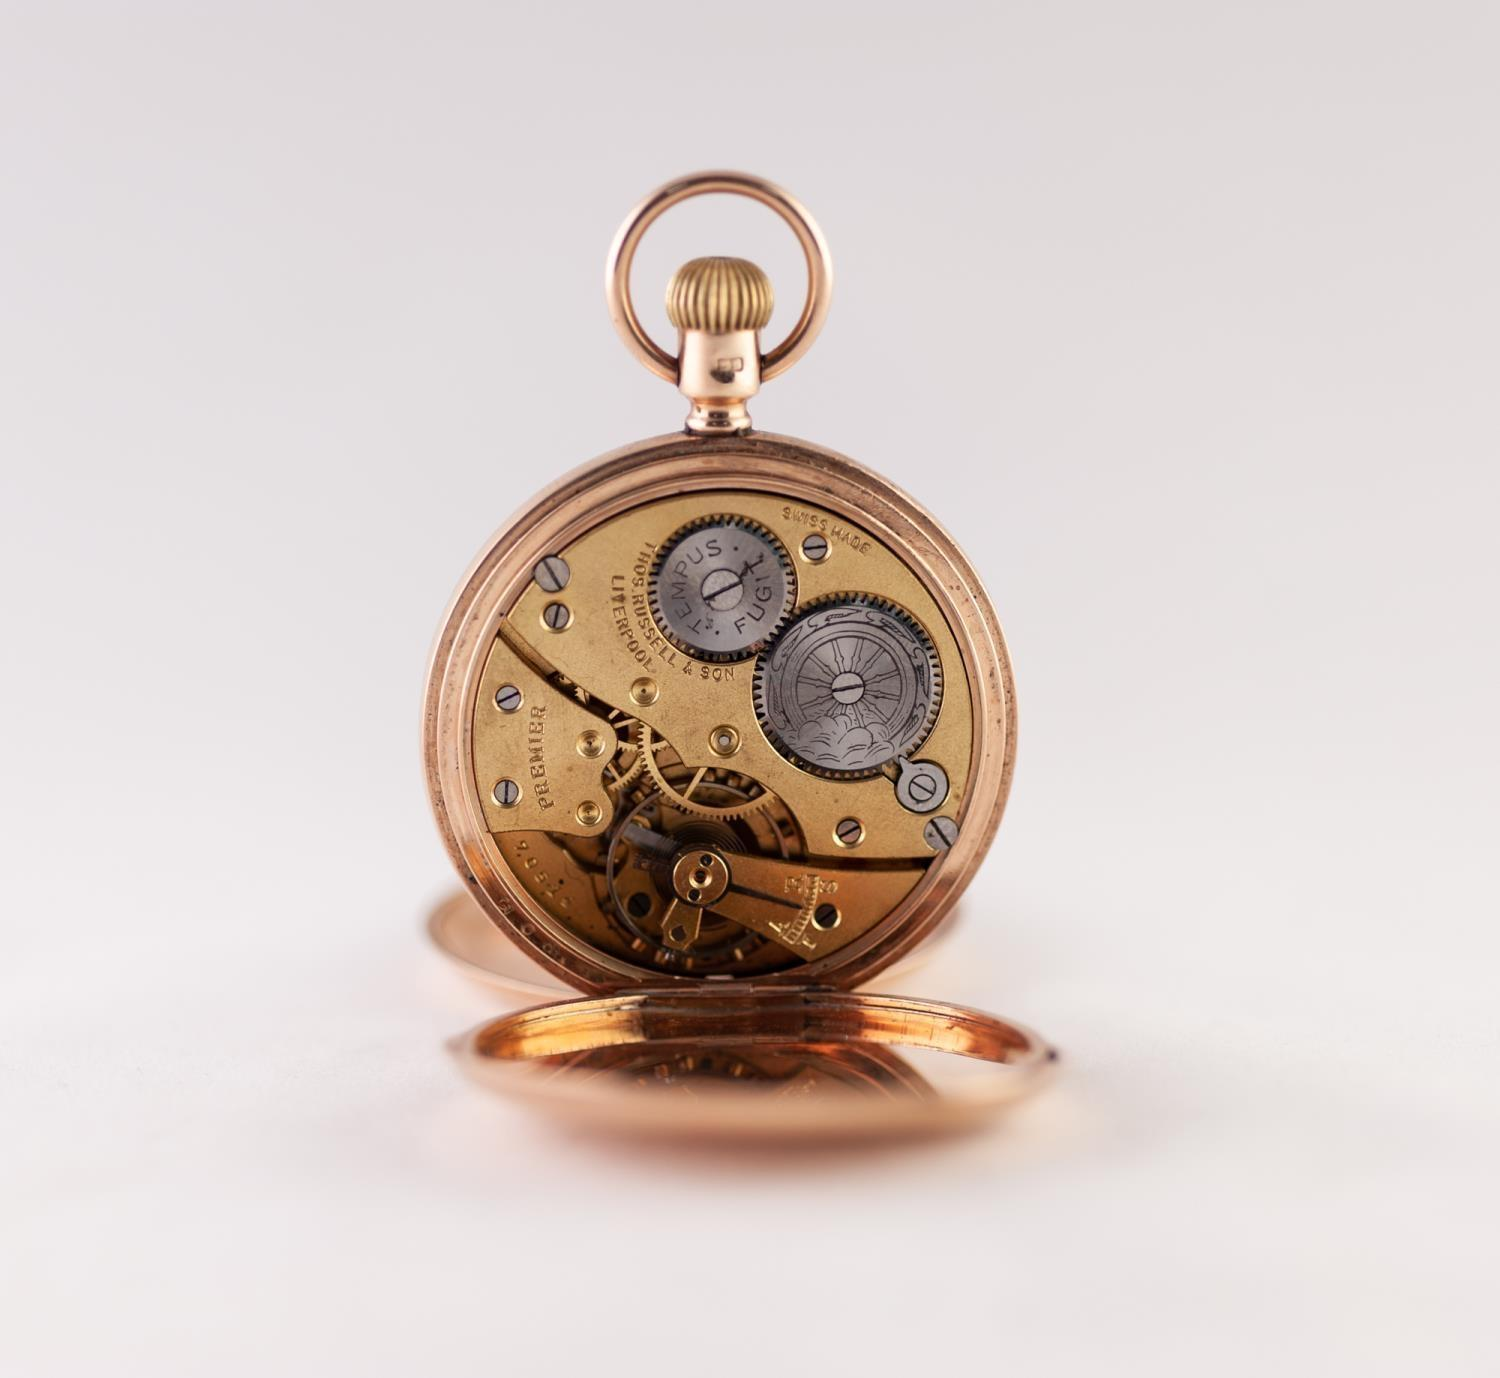 Lot 231 - THOMAS RUSSELL AND SON, LIVERPOOL 'PREMIER' 9ct GOLD FULL HUNTER POCKET WATCH, with Swiss keyless